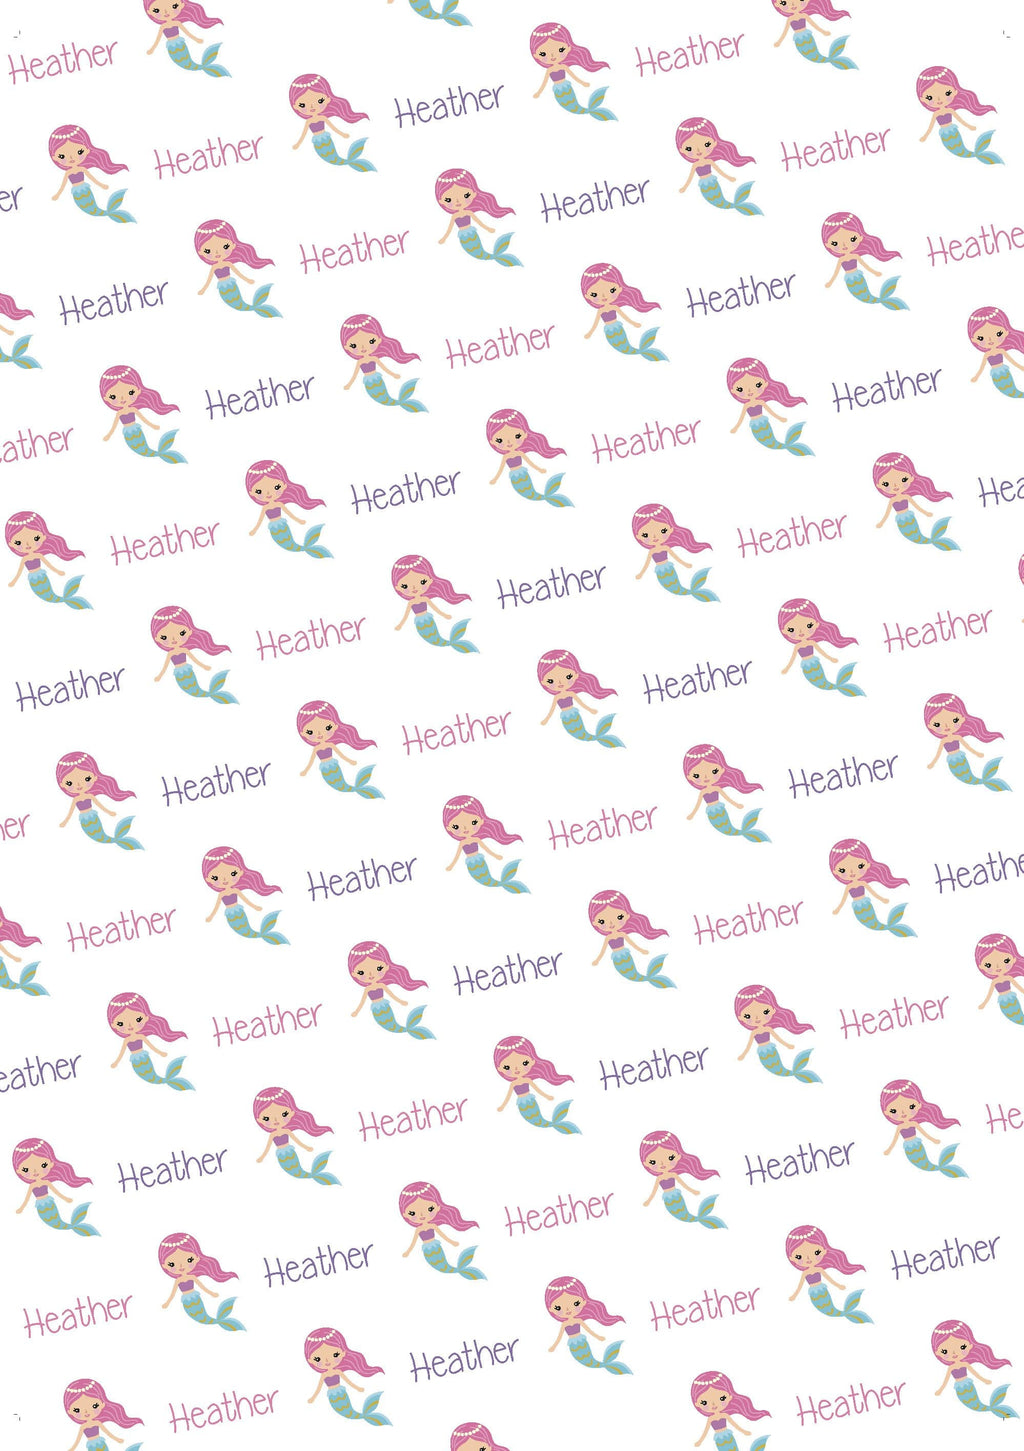 Mermaid Personalized Tissue Paper - Potter's Printing